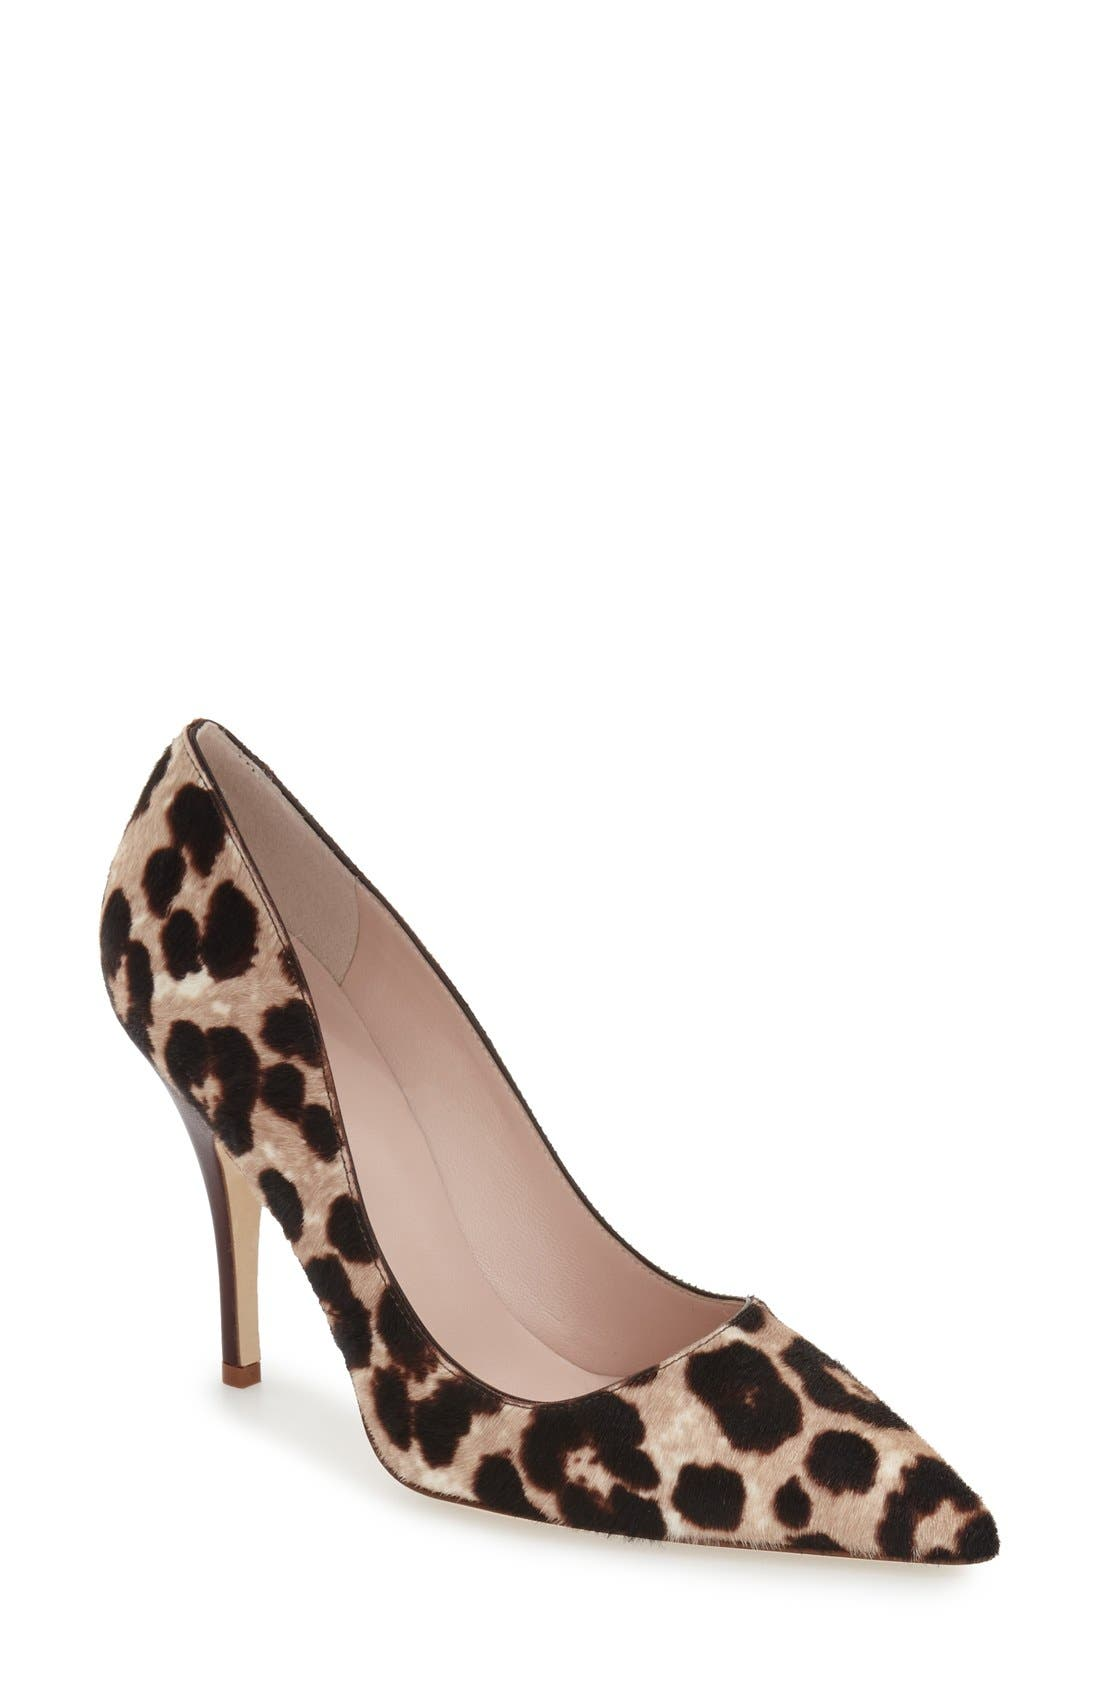 Alternate Image 1 Selected - kate spade new york 'licorice too' genuine calf hair pump (Women)